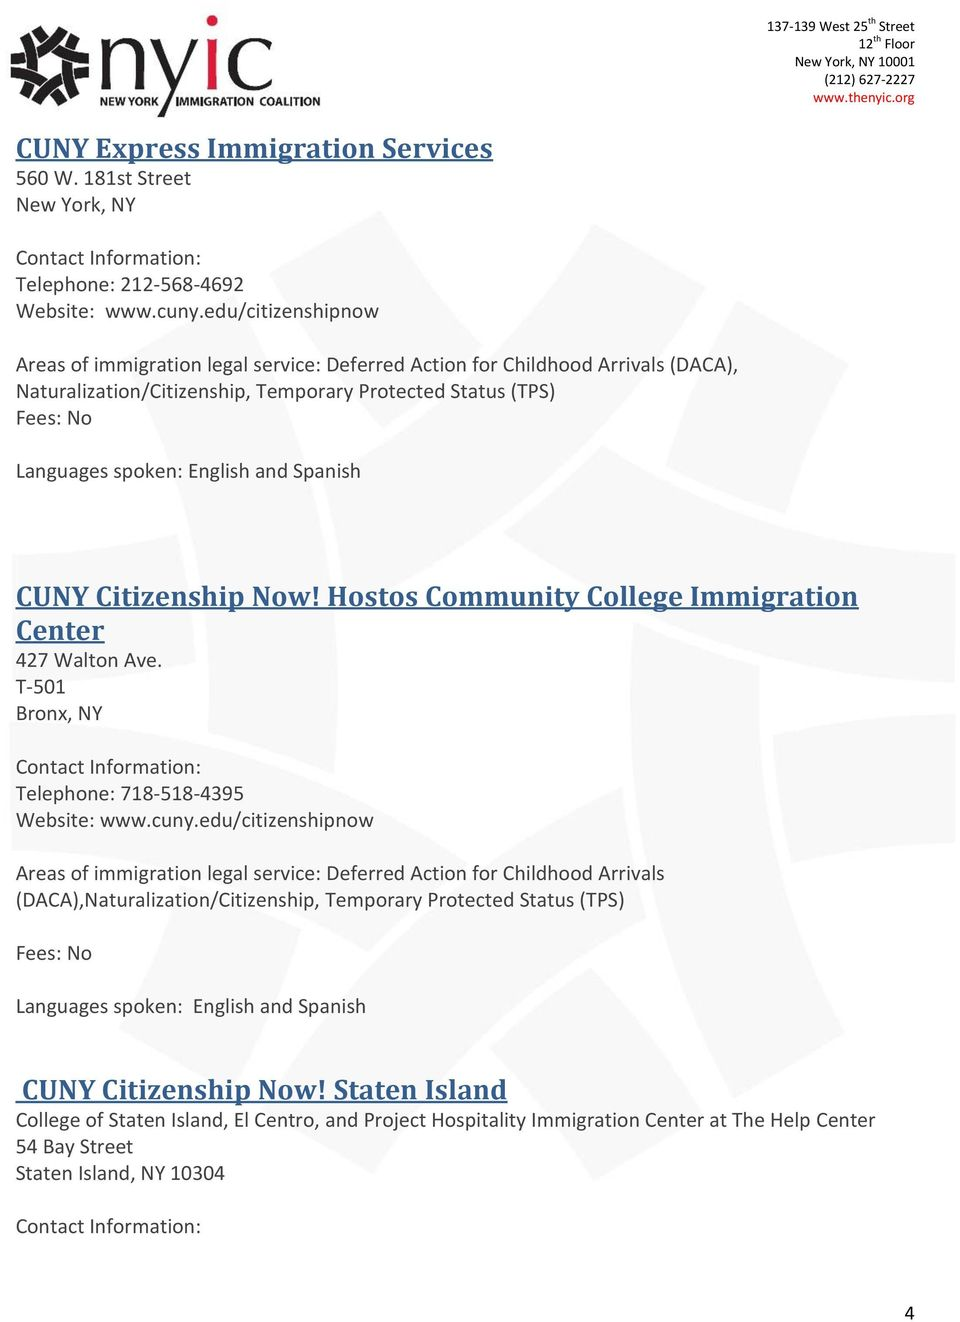 Spanish CUNY Citizenship Now! Hostos Community College Immigration Center 427 Walton Ave. T-501 Bronx, NY 718-518-4395 Website: www.cuny.